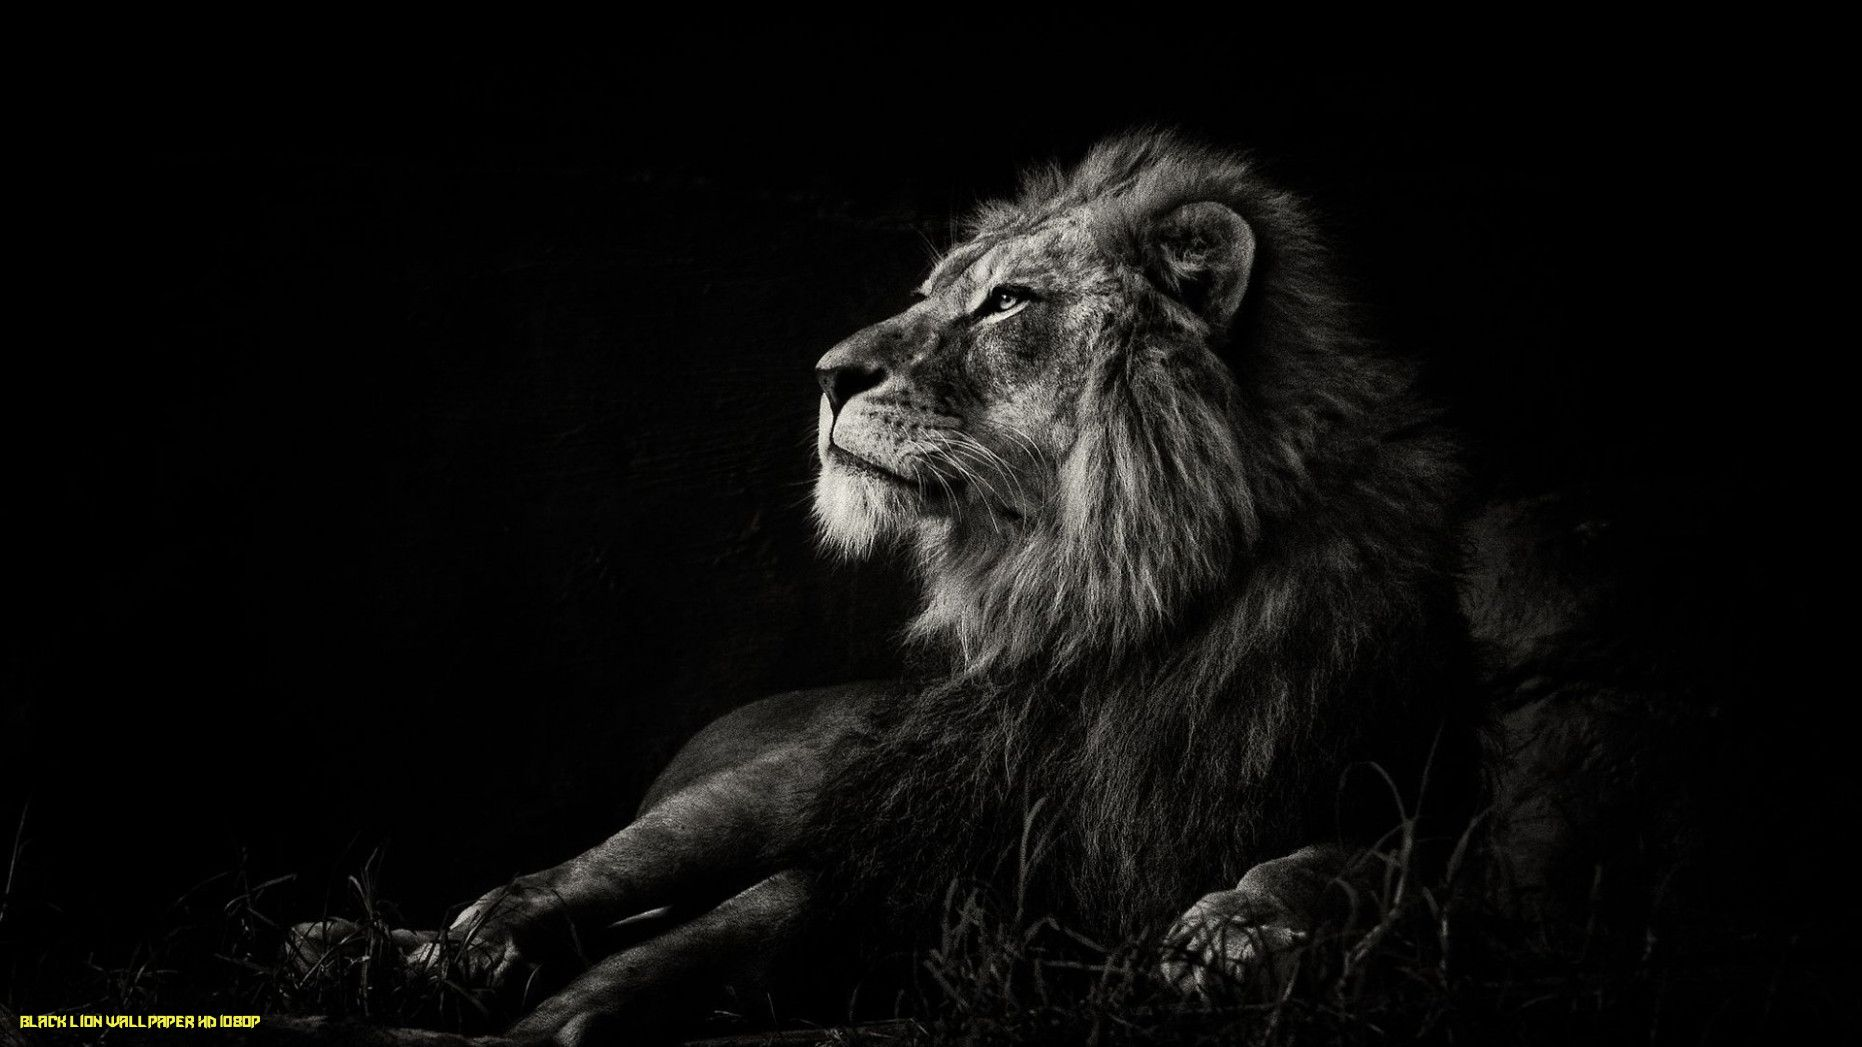 Lion Iphone Android Iphone Desktop Hd Backgrounds Wallpapers 1080p 4k 124816 Hdwallpapers Androidwal Lion Images Lion Wallpaper Lion Hd Wallpaper